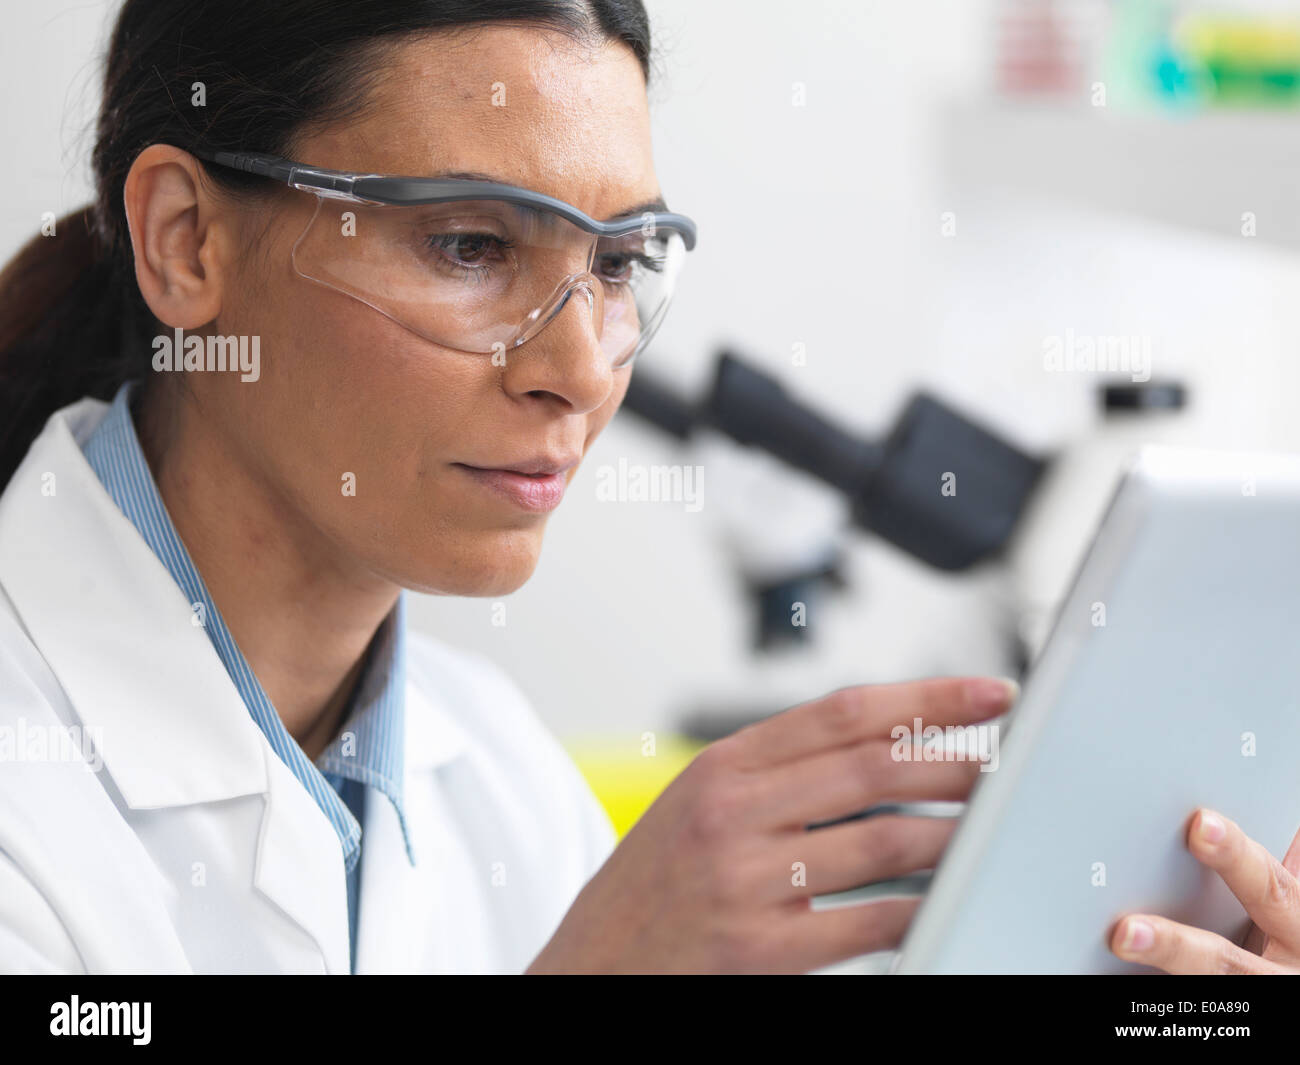 Scientist viewing test results on a digital tablet in lab - Stock Image